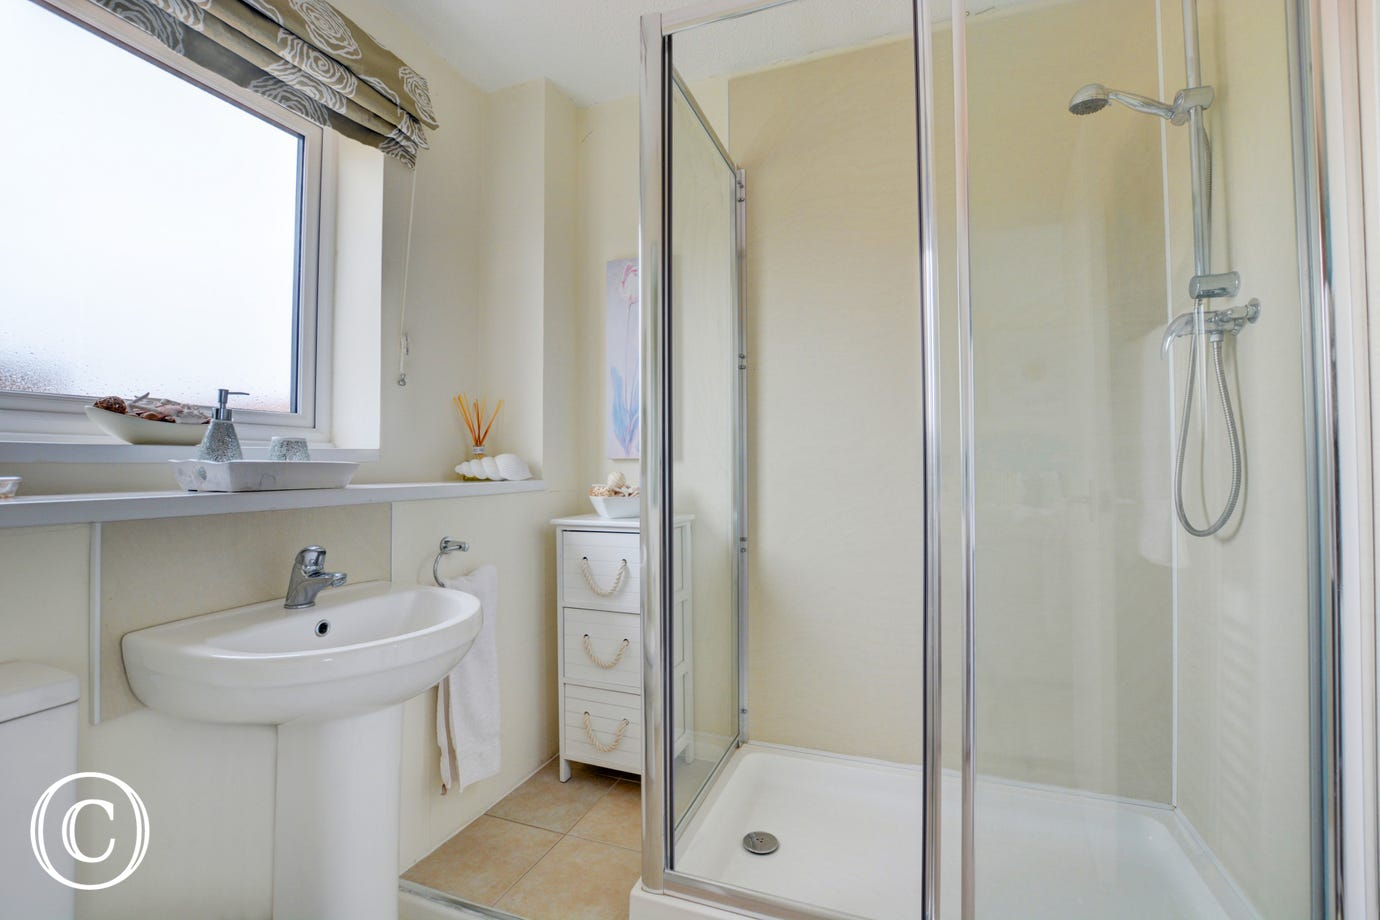 The en-suite shower room is bright and modern.  This view shows the bathroom cabinet and chrome towel rail, along with the wash basin and toilet.